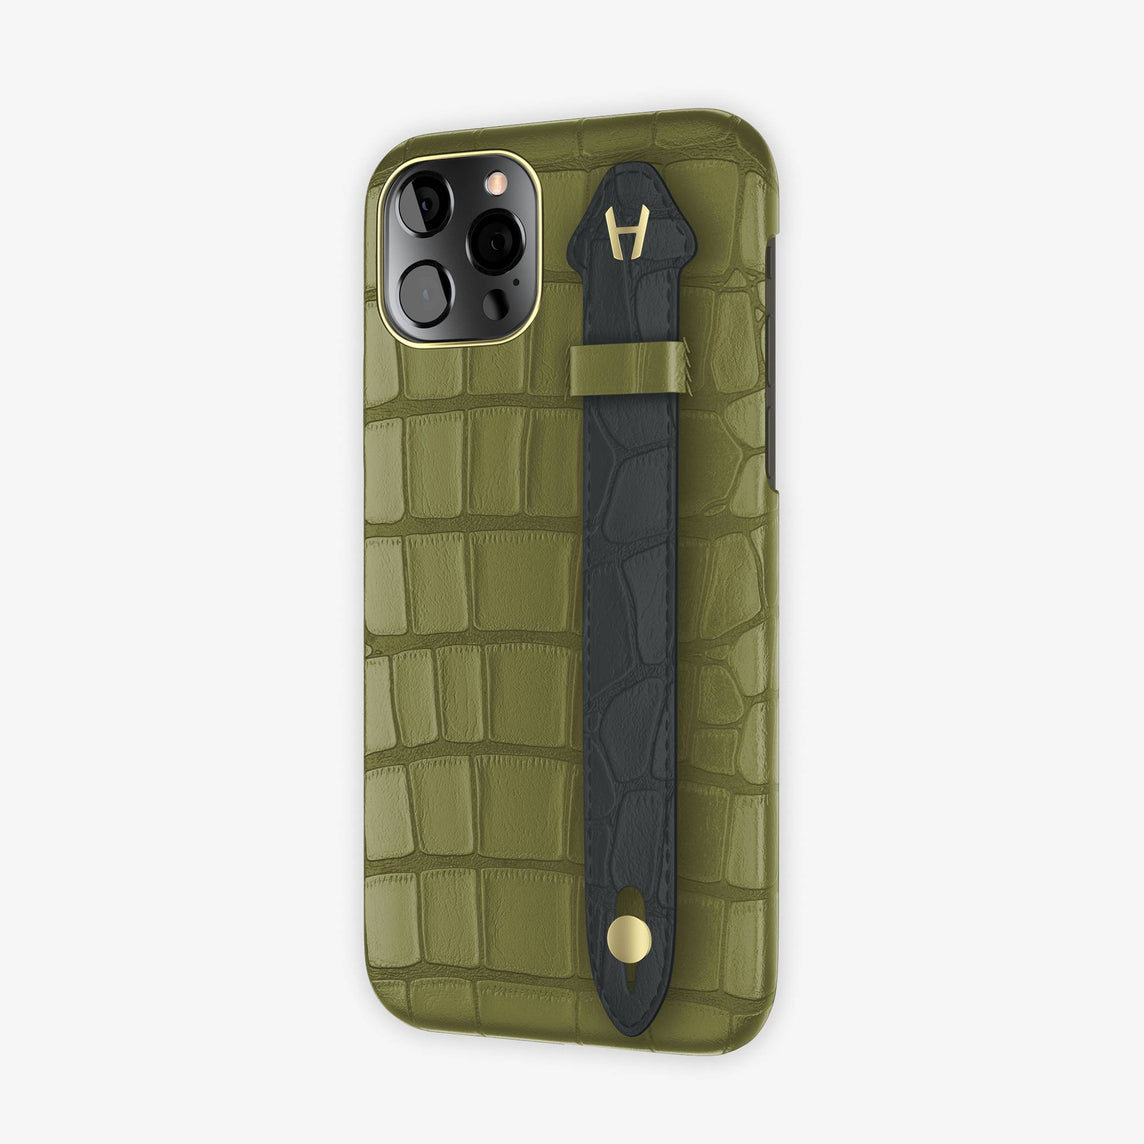 Alligator Side Finger Case iPhone 12 & iPhone 12 Pro | Khaki/Anthracite -Yellow Gold